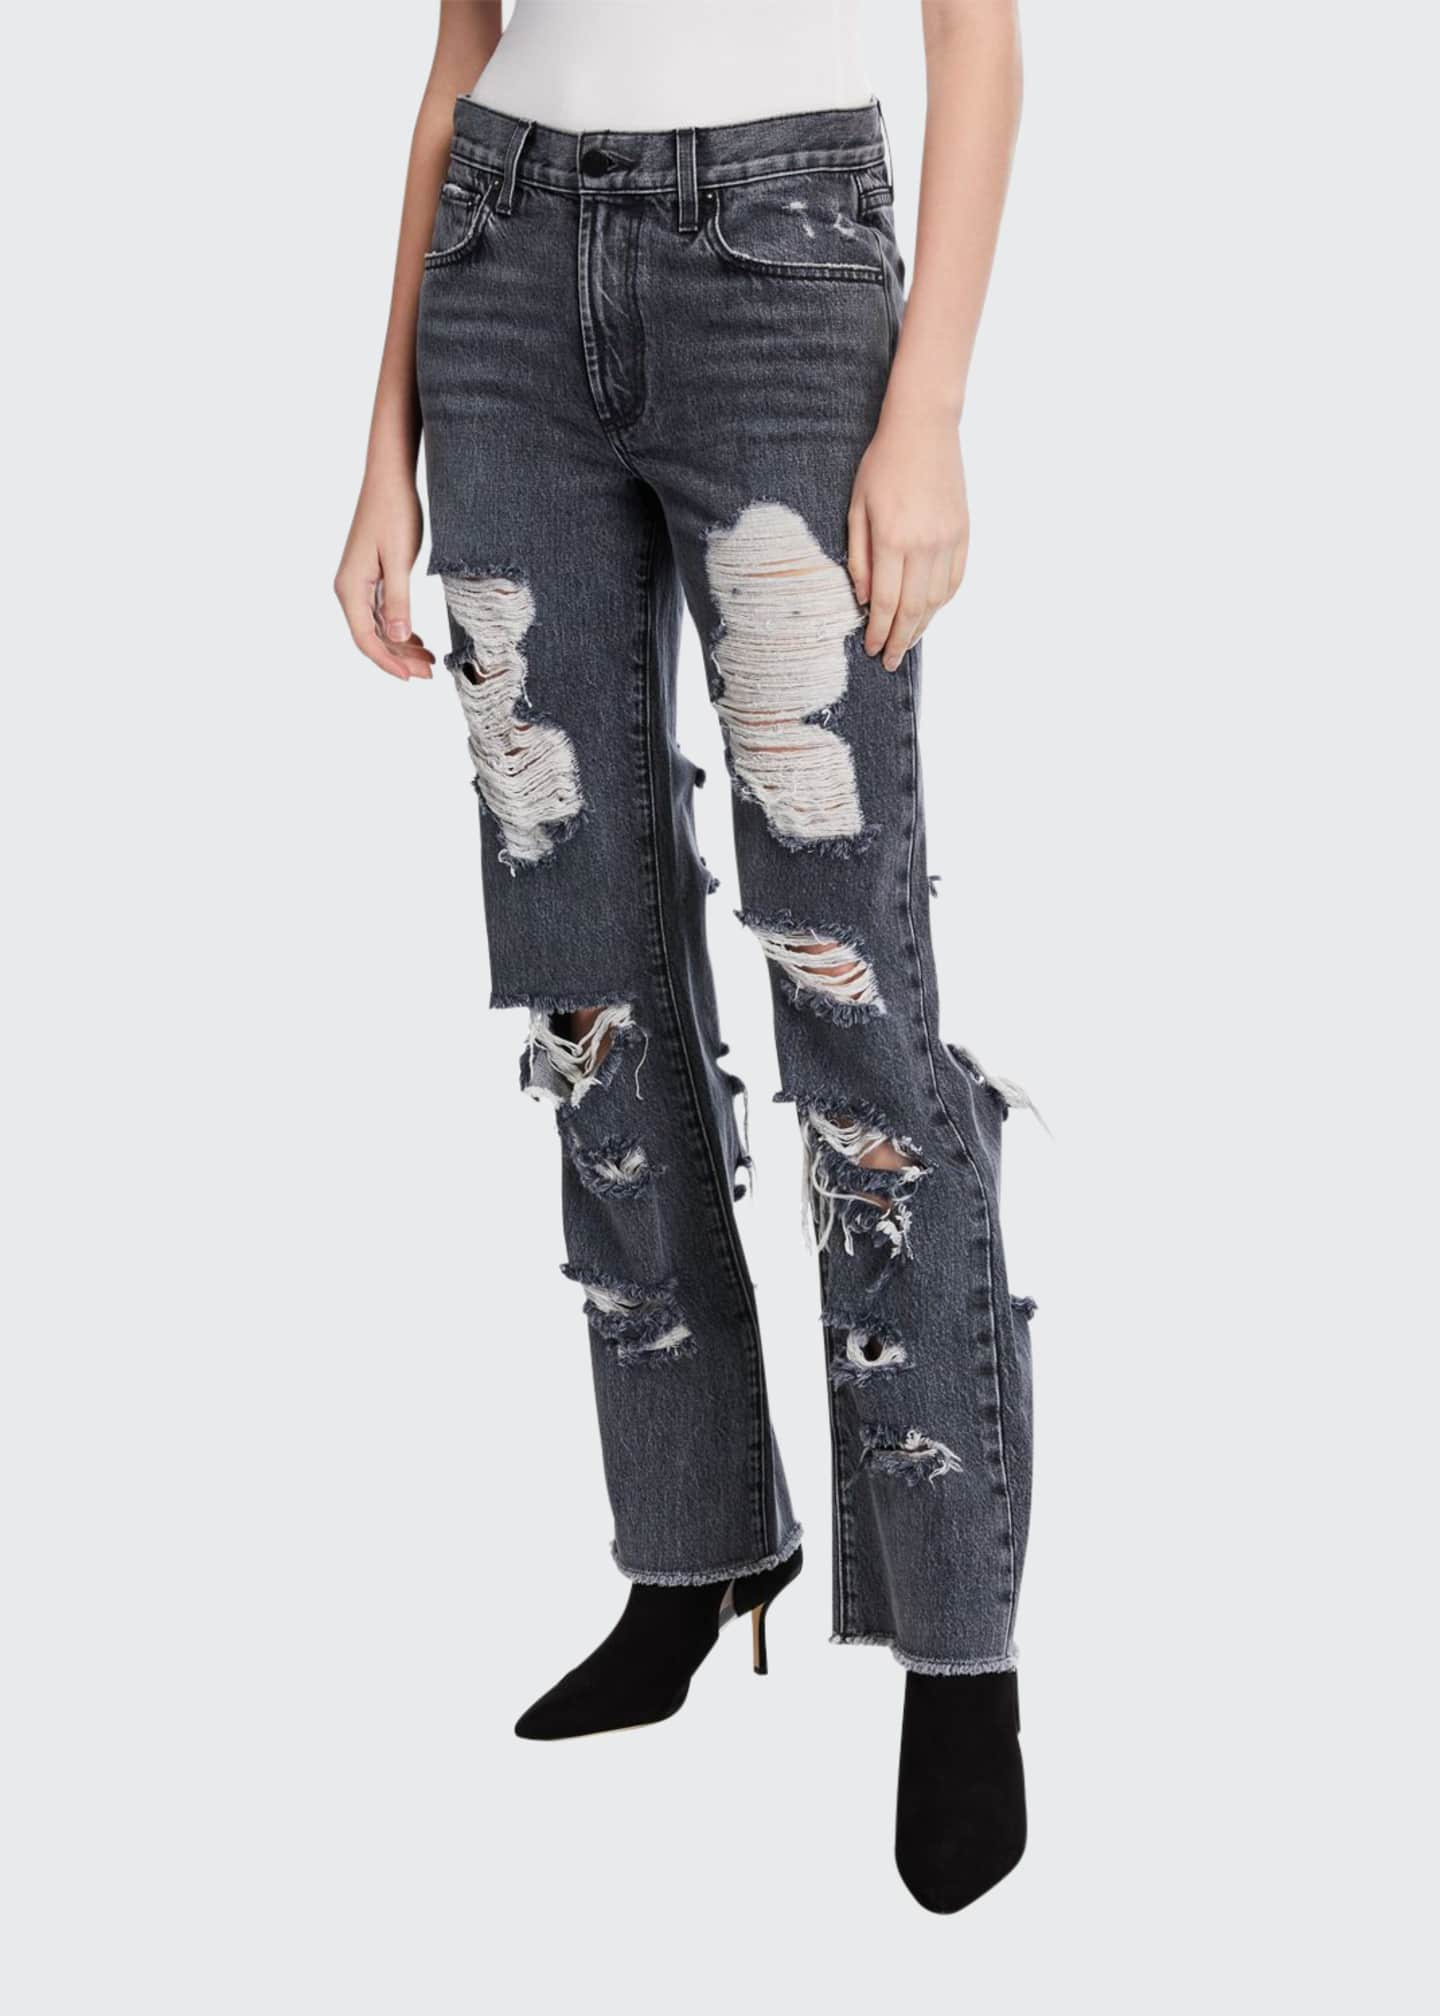 Alice + Olivia Genevive Extreme Distressed Girlfriend Jeans